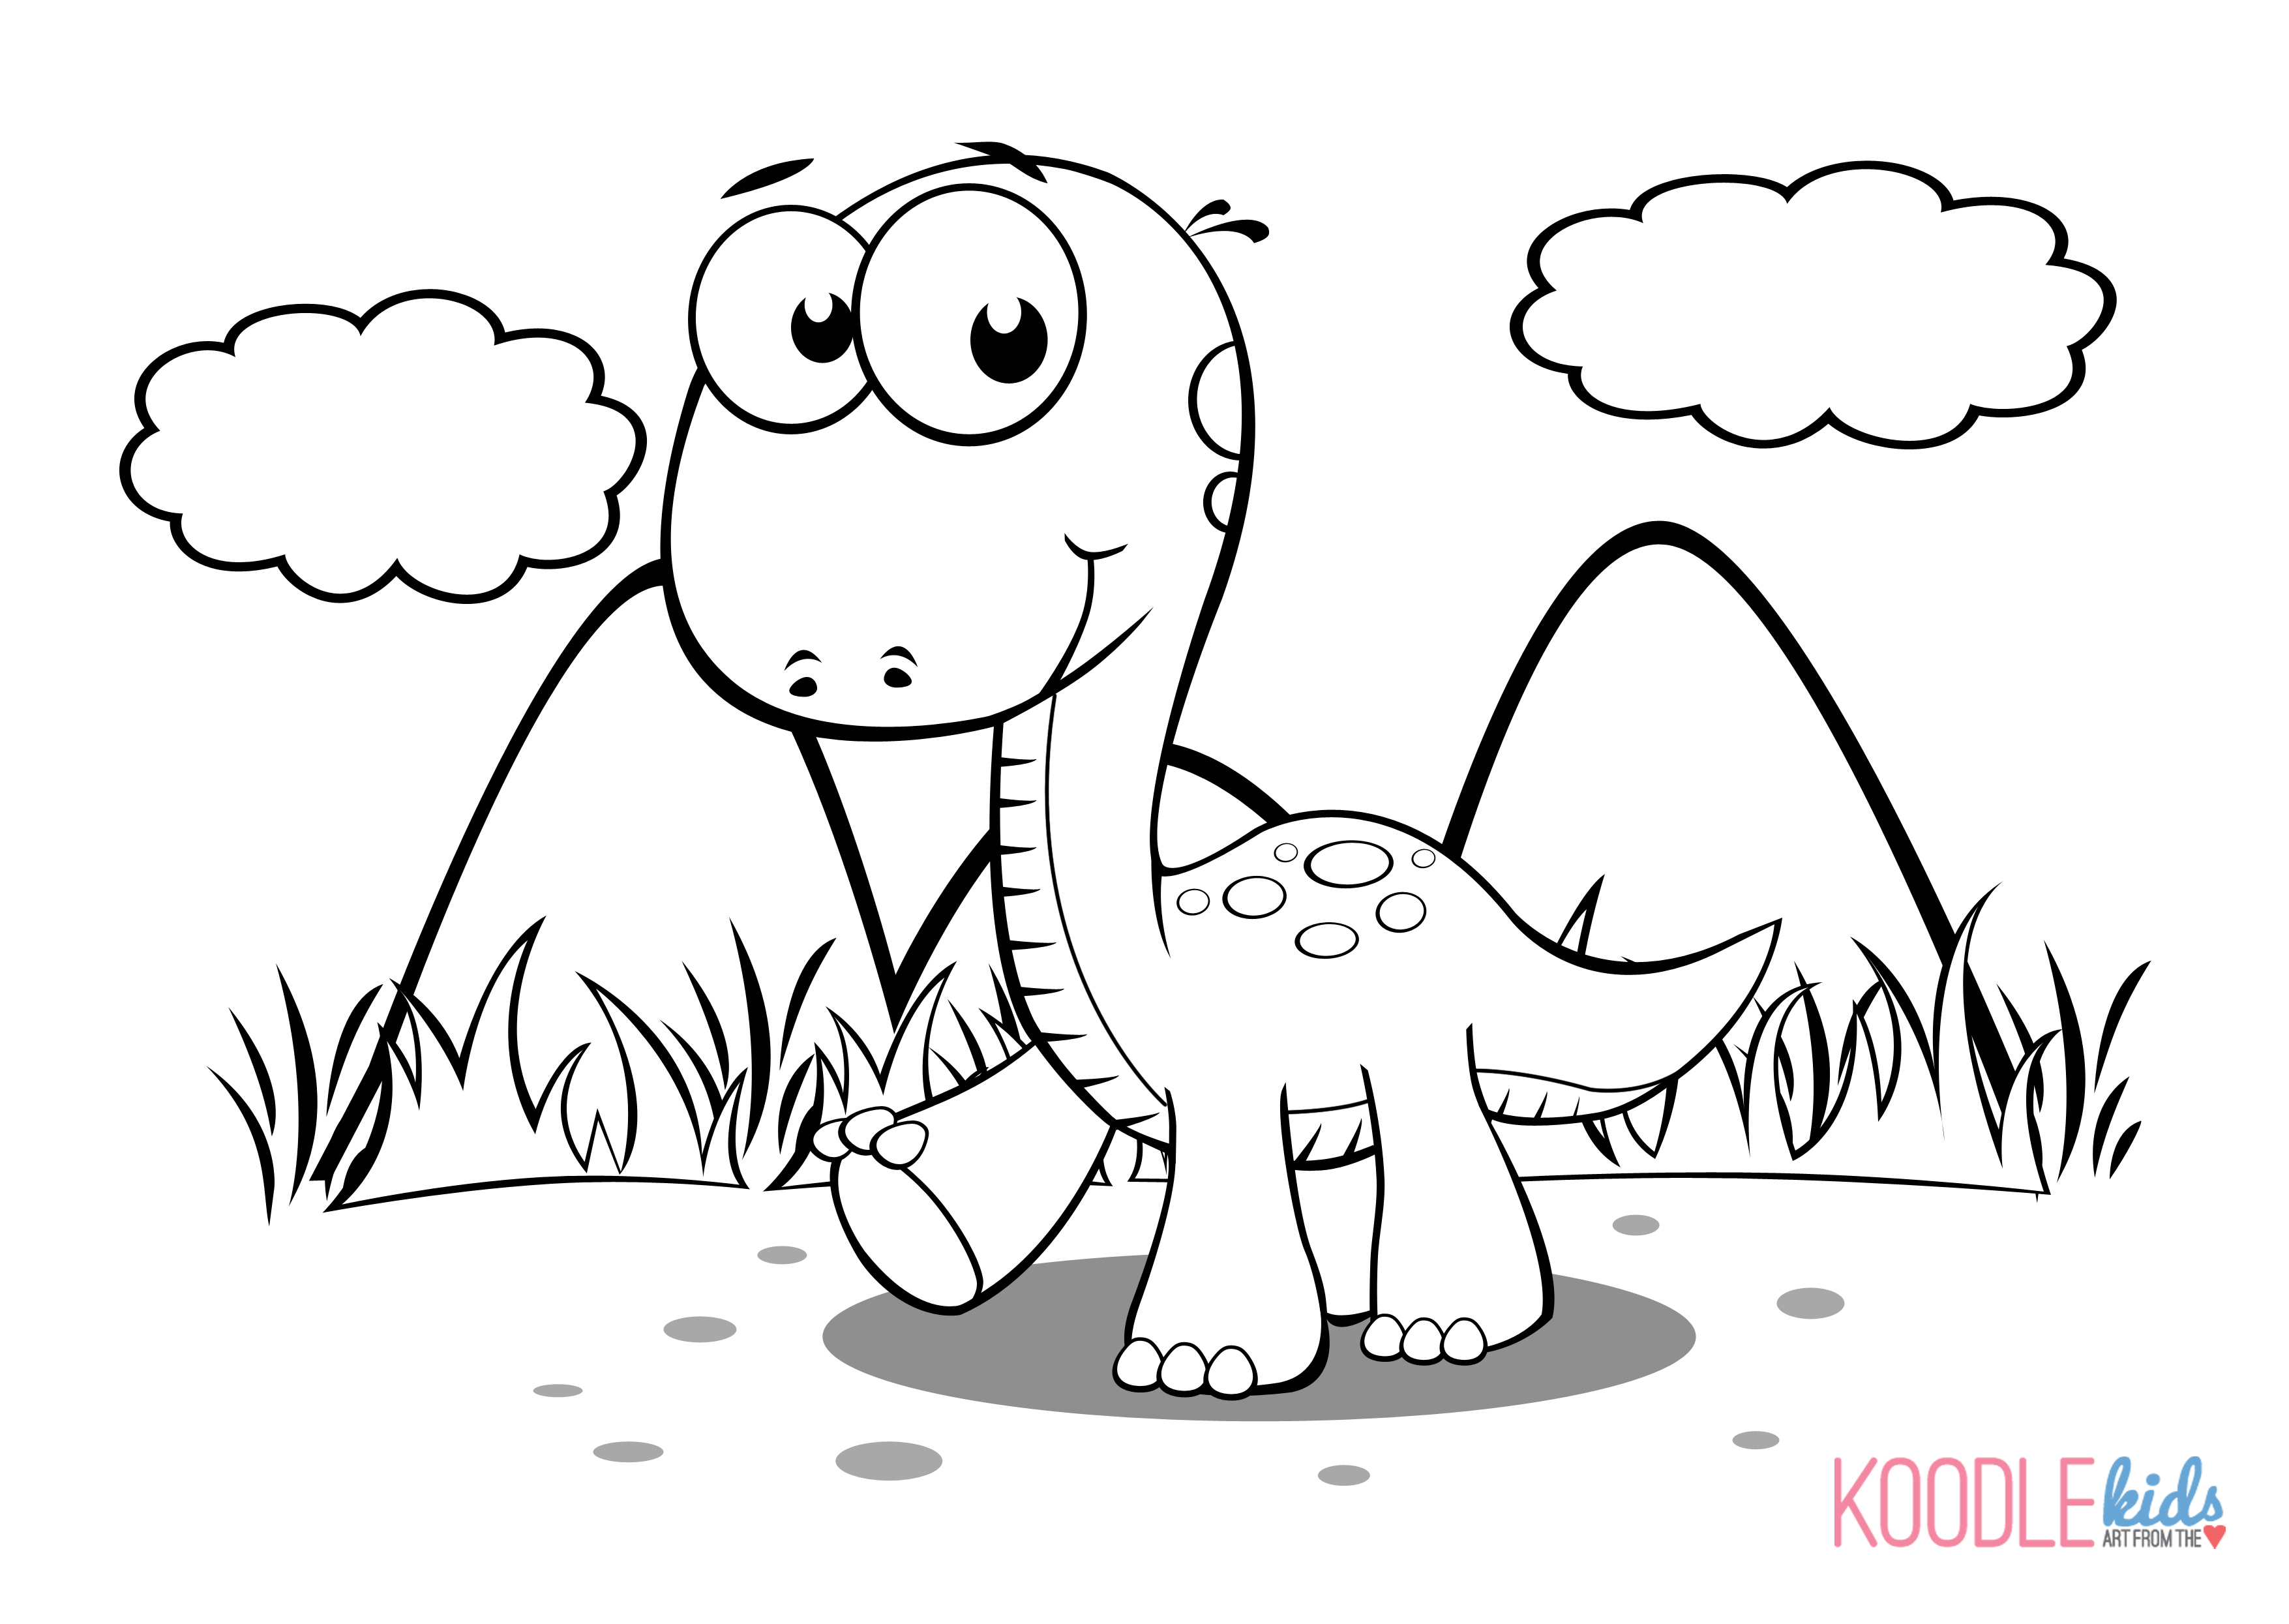 dinosaur colouring pages printable dinosaurs coloring pages printable minister coloring colouring pages printable dinosaur